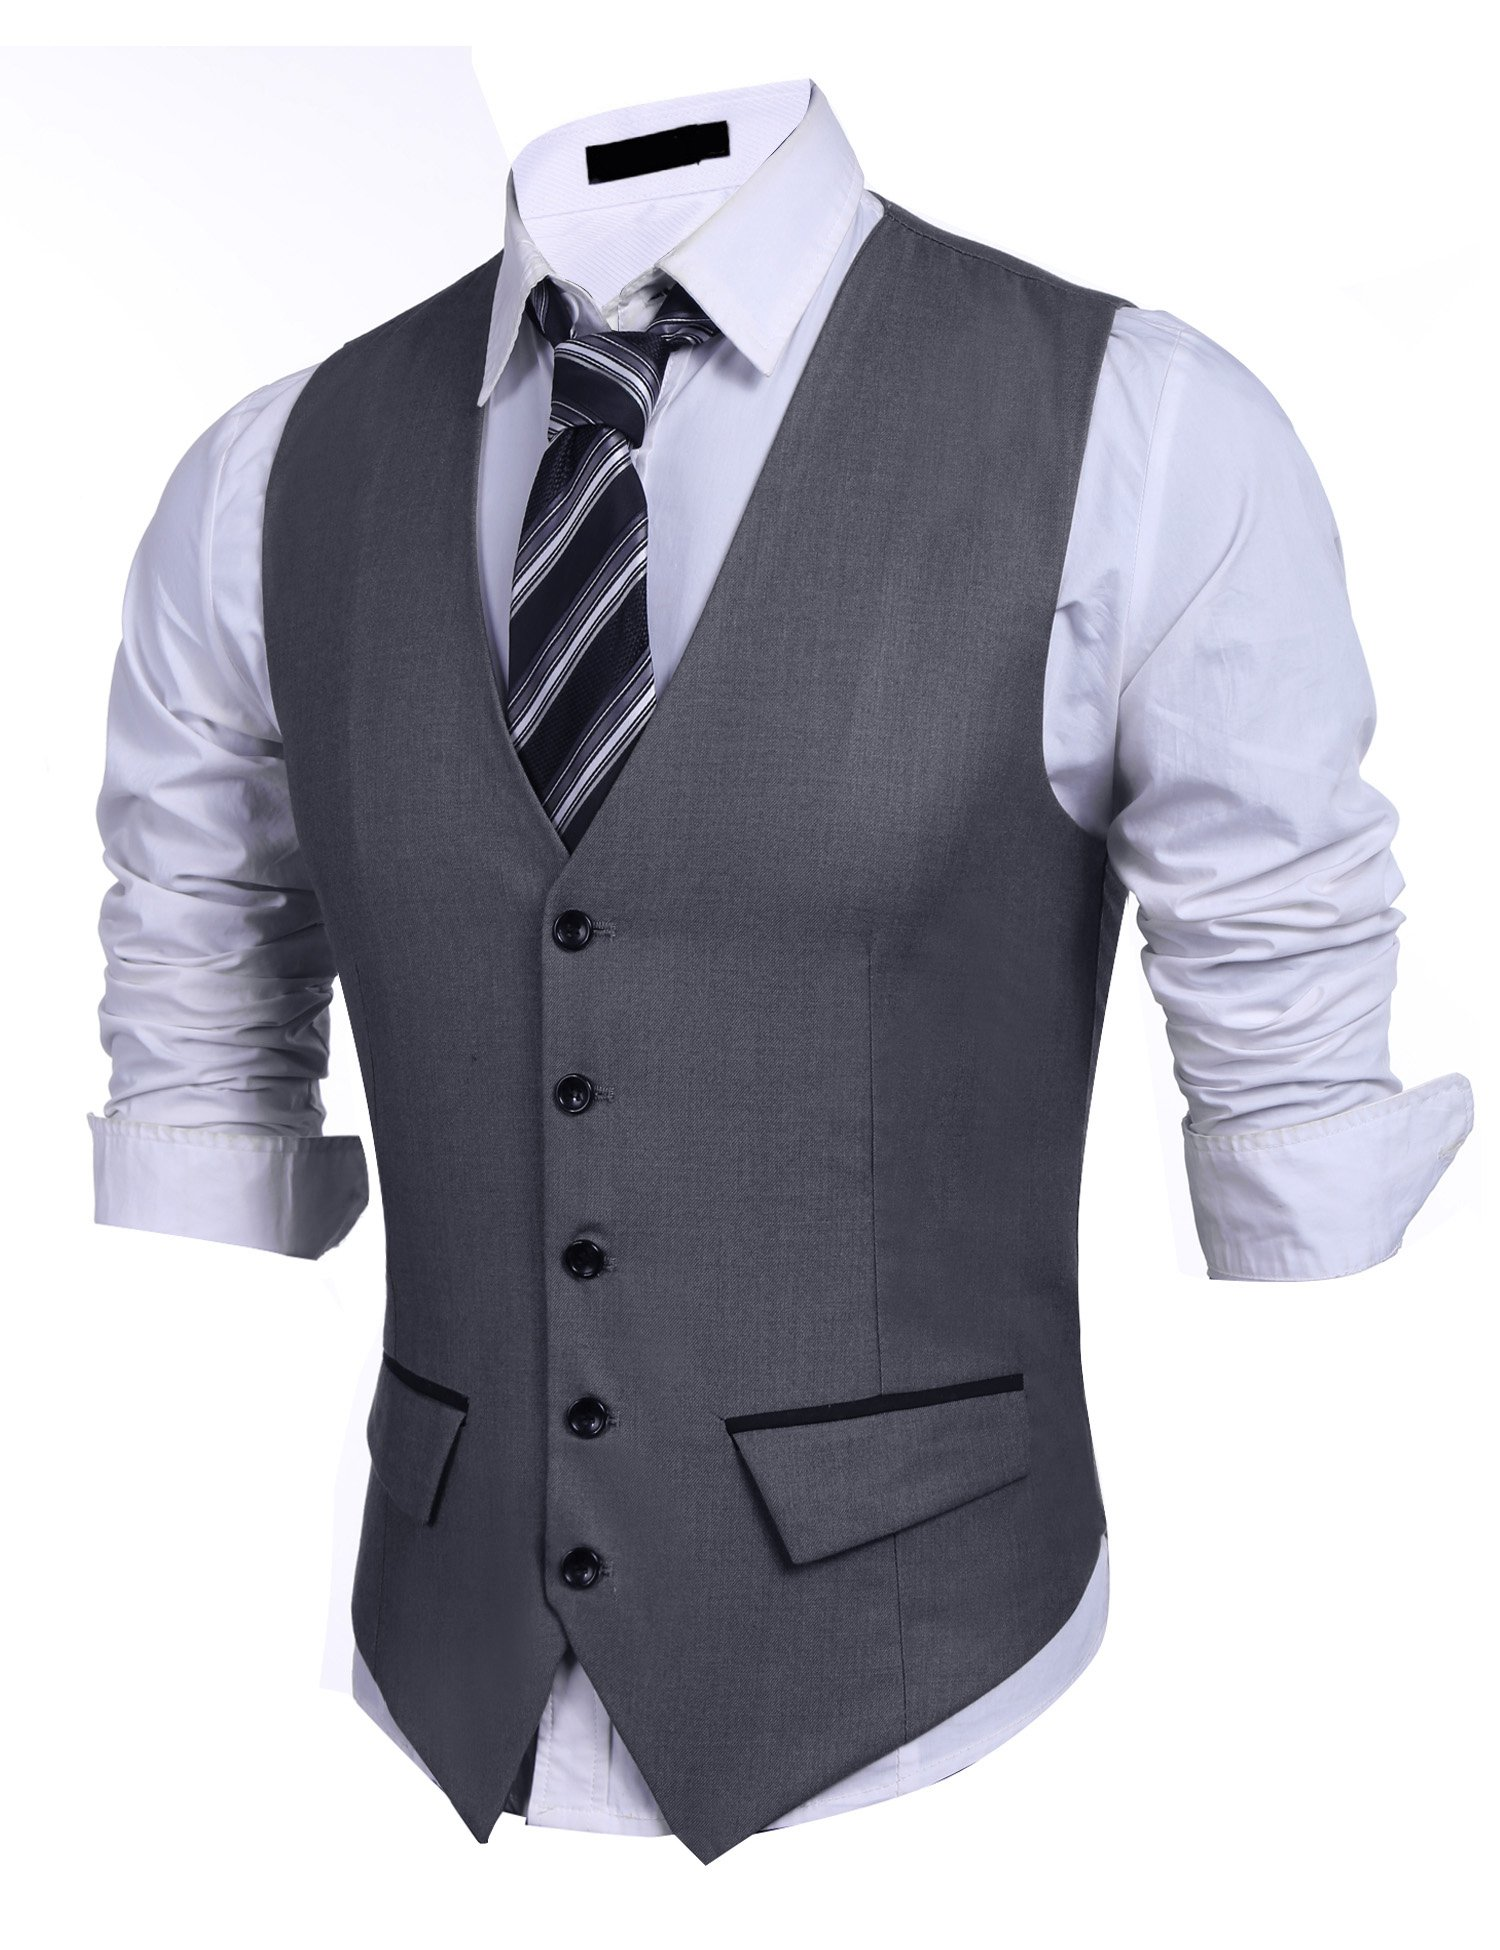 PEATAO Men Suit Vest, Slim Fit Button Down Dress Vest Business Wedding Party Waistcoat